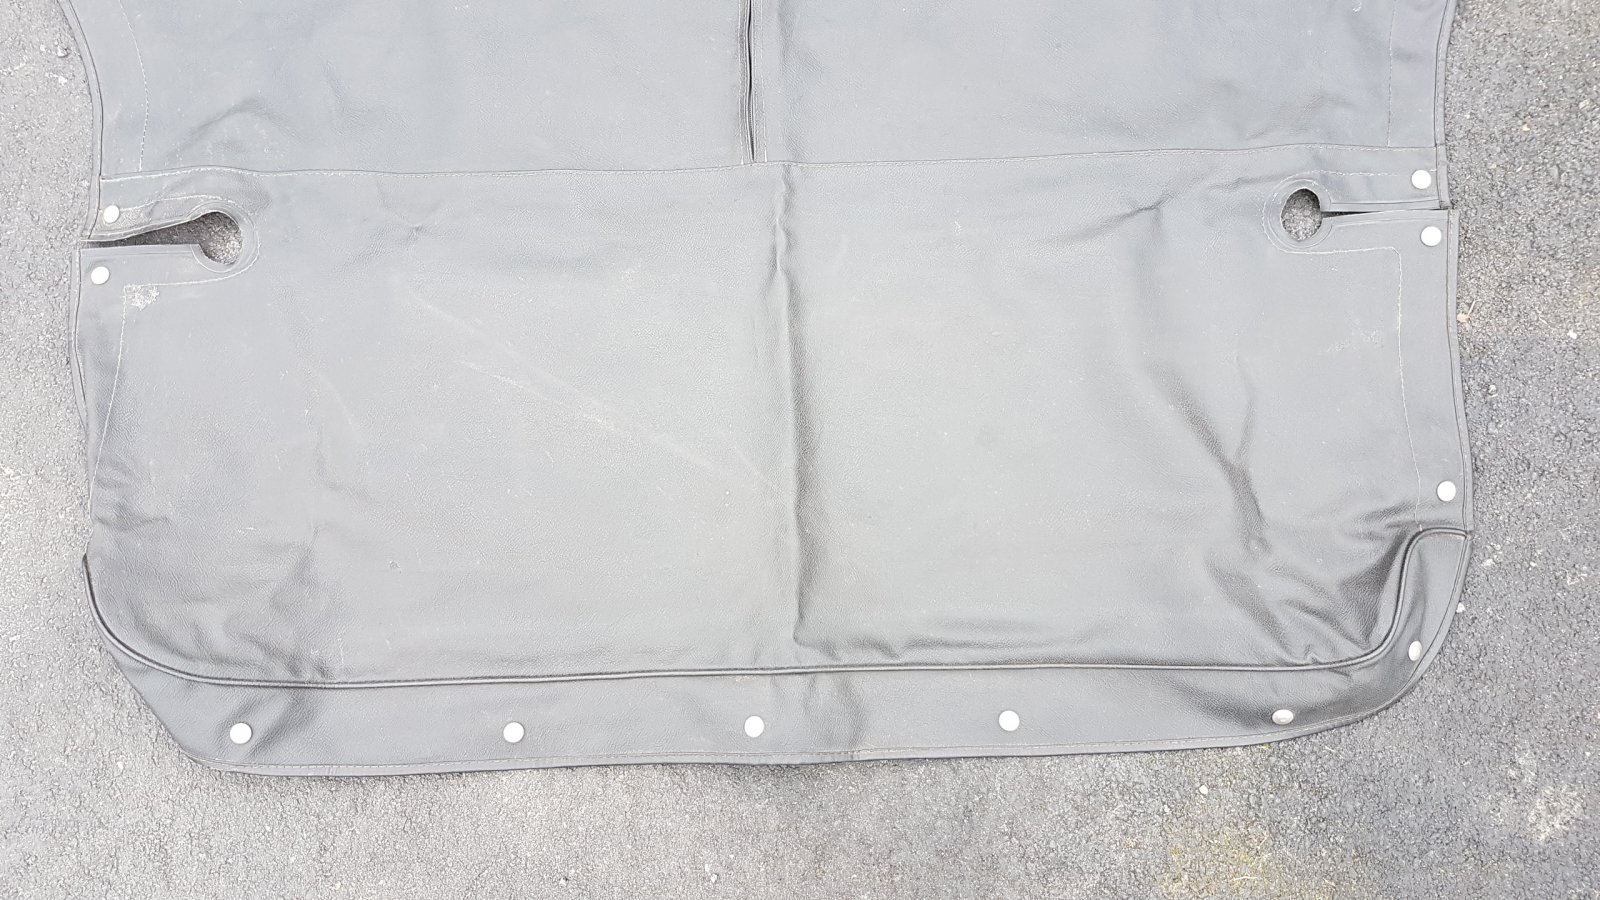 Bed Covers For Sale Westfield Sei Narrow Full Tonneau Cover Parts For Sale